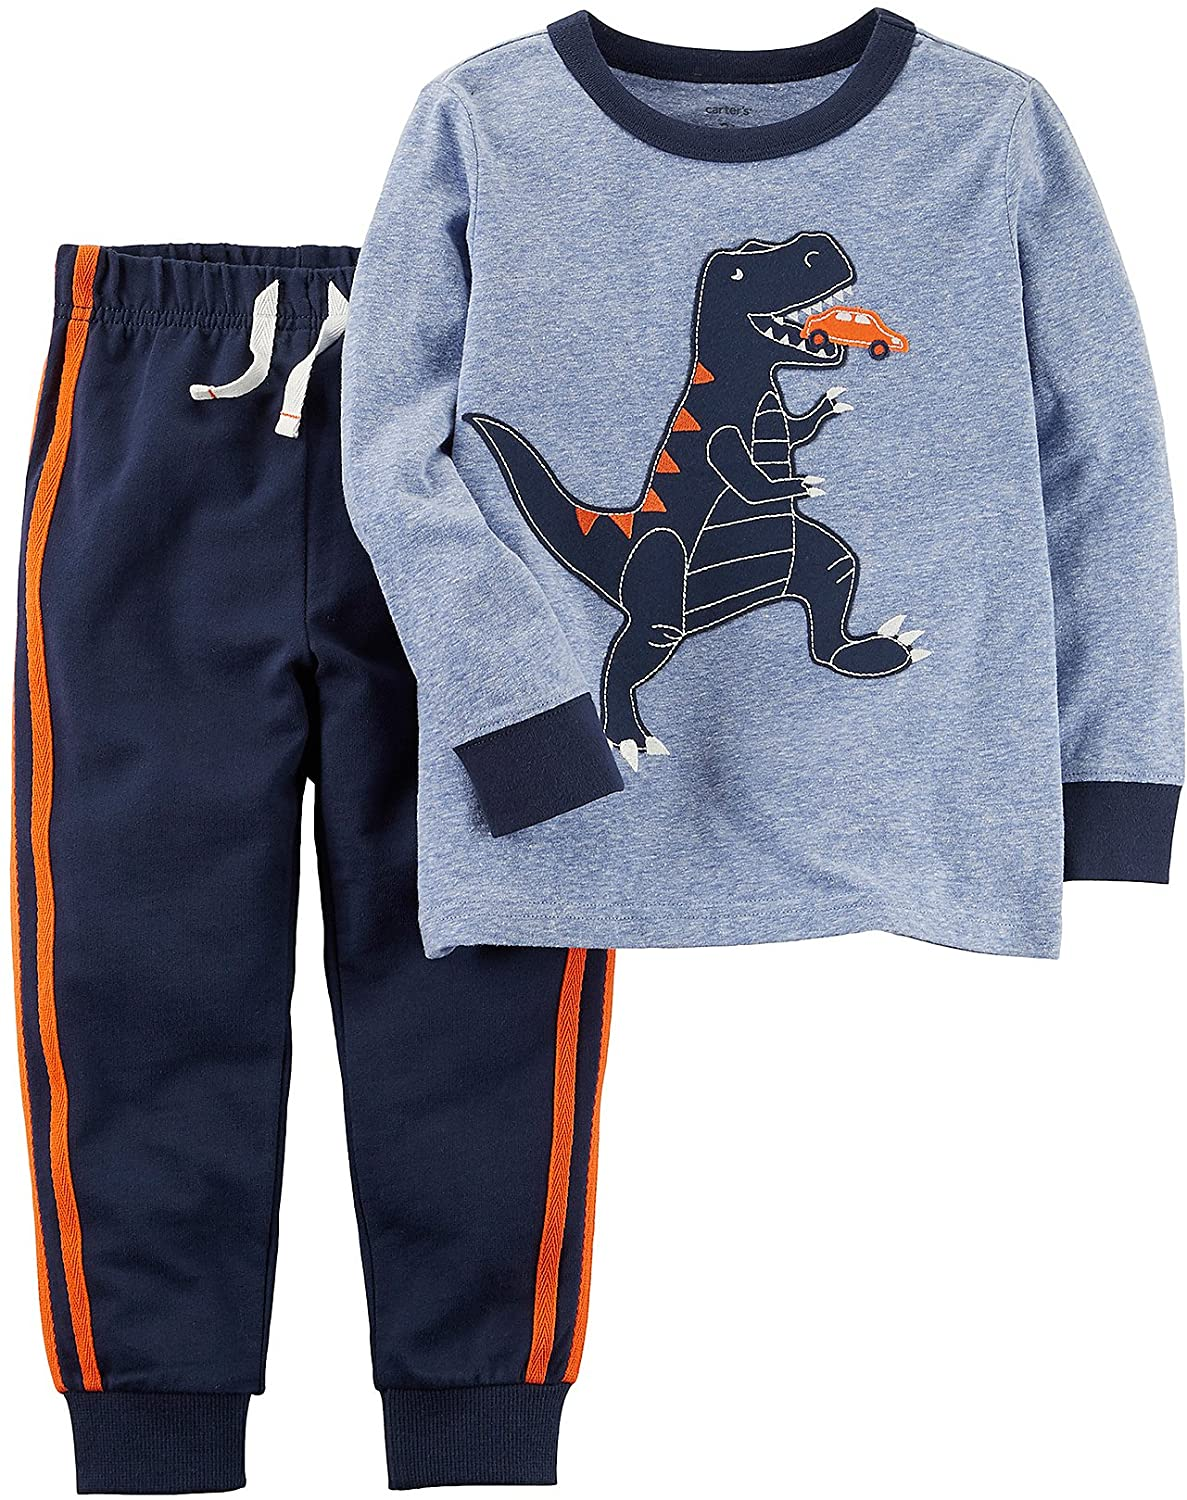 Carter's Baby Boys' 2 Piece Dinosaur Graphic Tee & Jogger Set 3 Months Blue